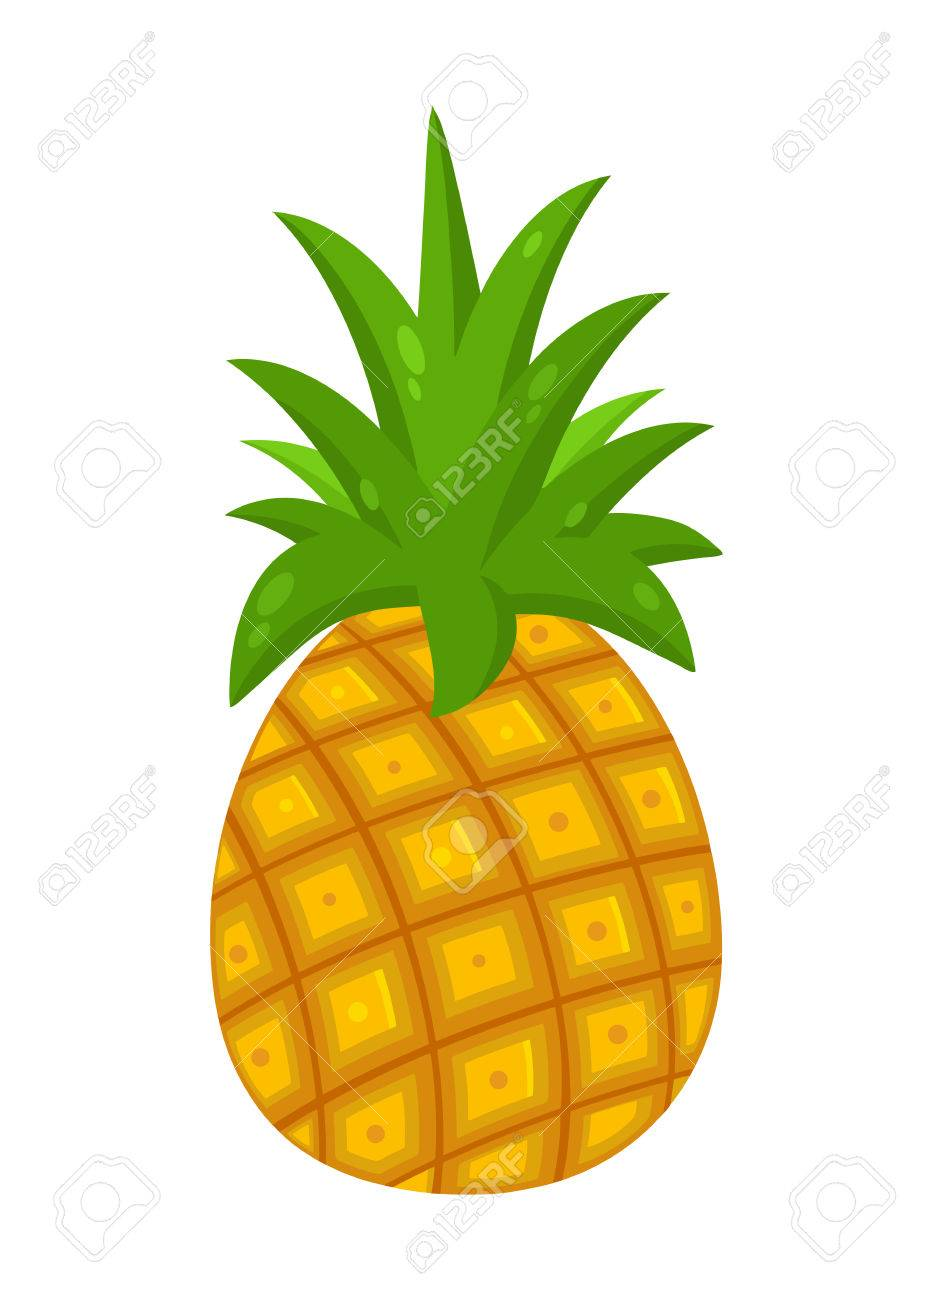 932x1300 Pineapple Fruit With Green Leafs Drawing Flat Simple Design